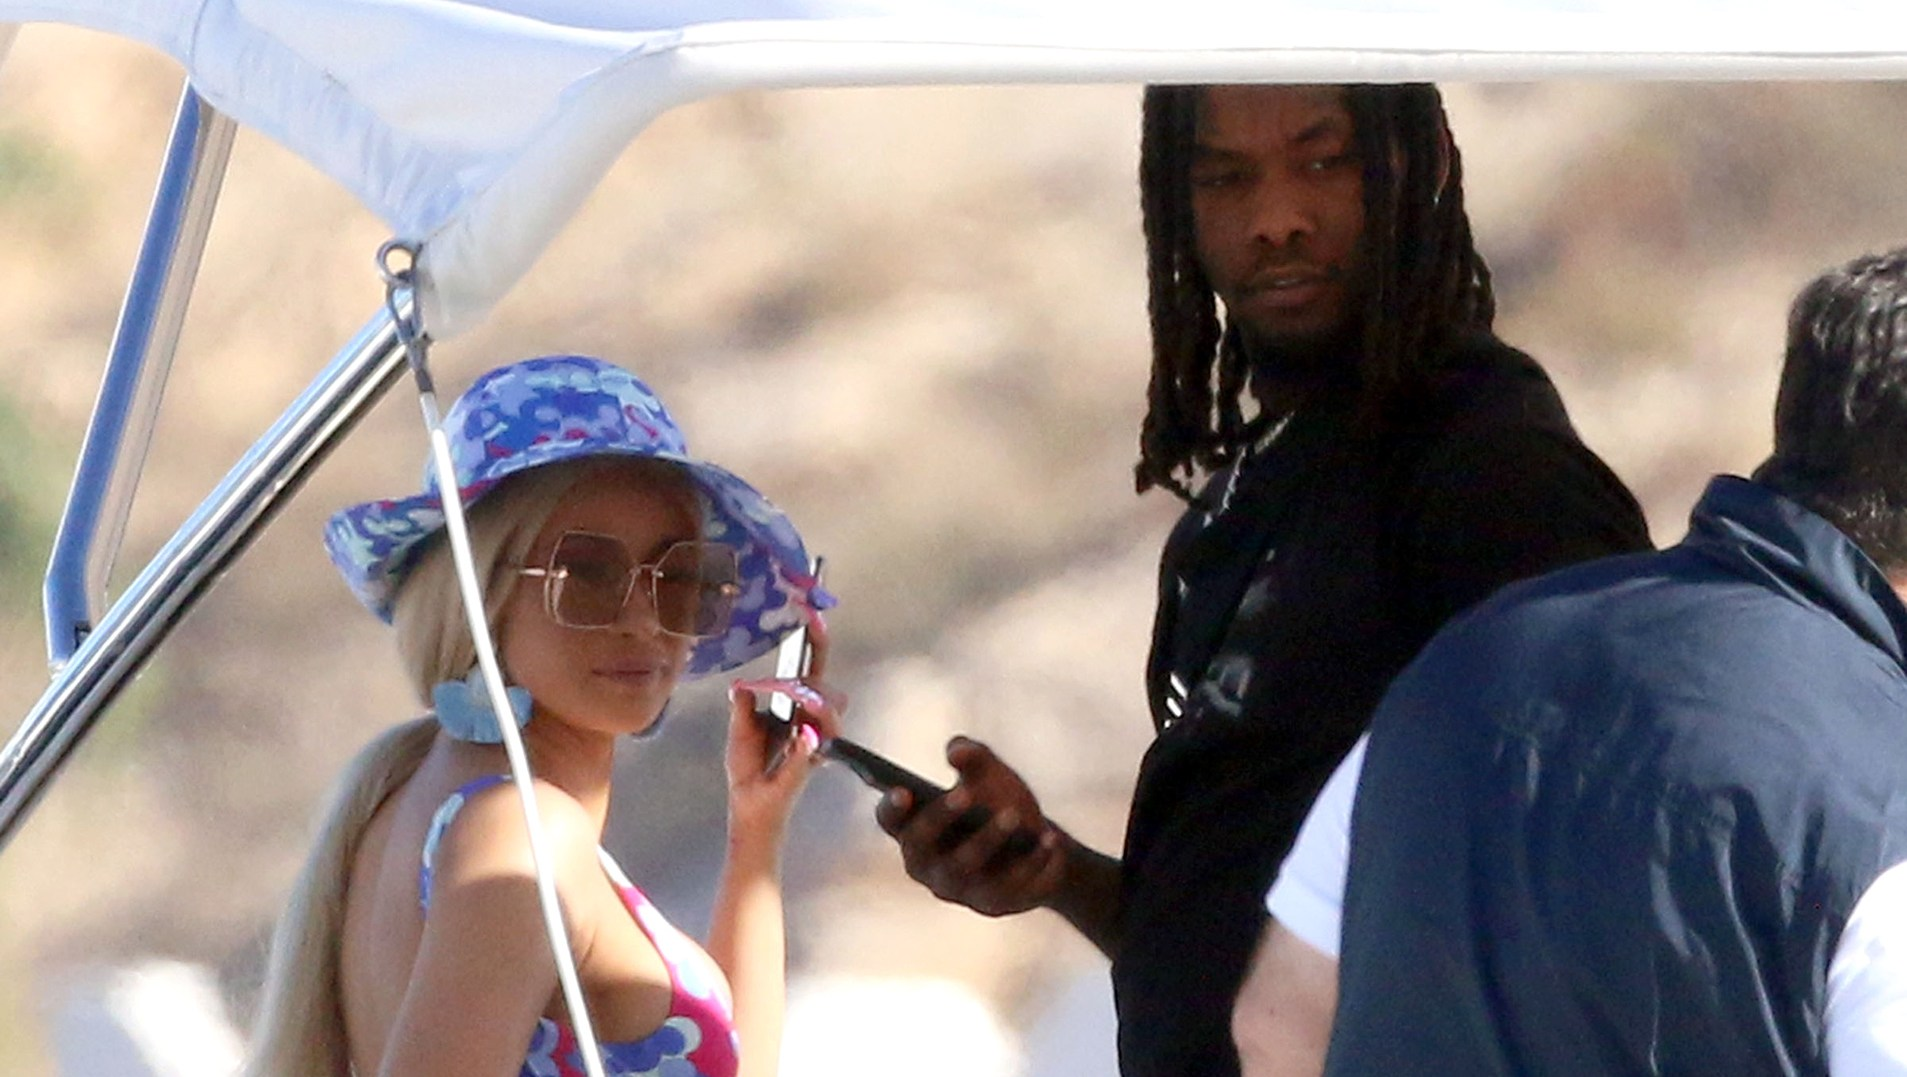 Cardi B and Offset Were 'All Over Each Other' During Cabo San Lucas Getaway